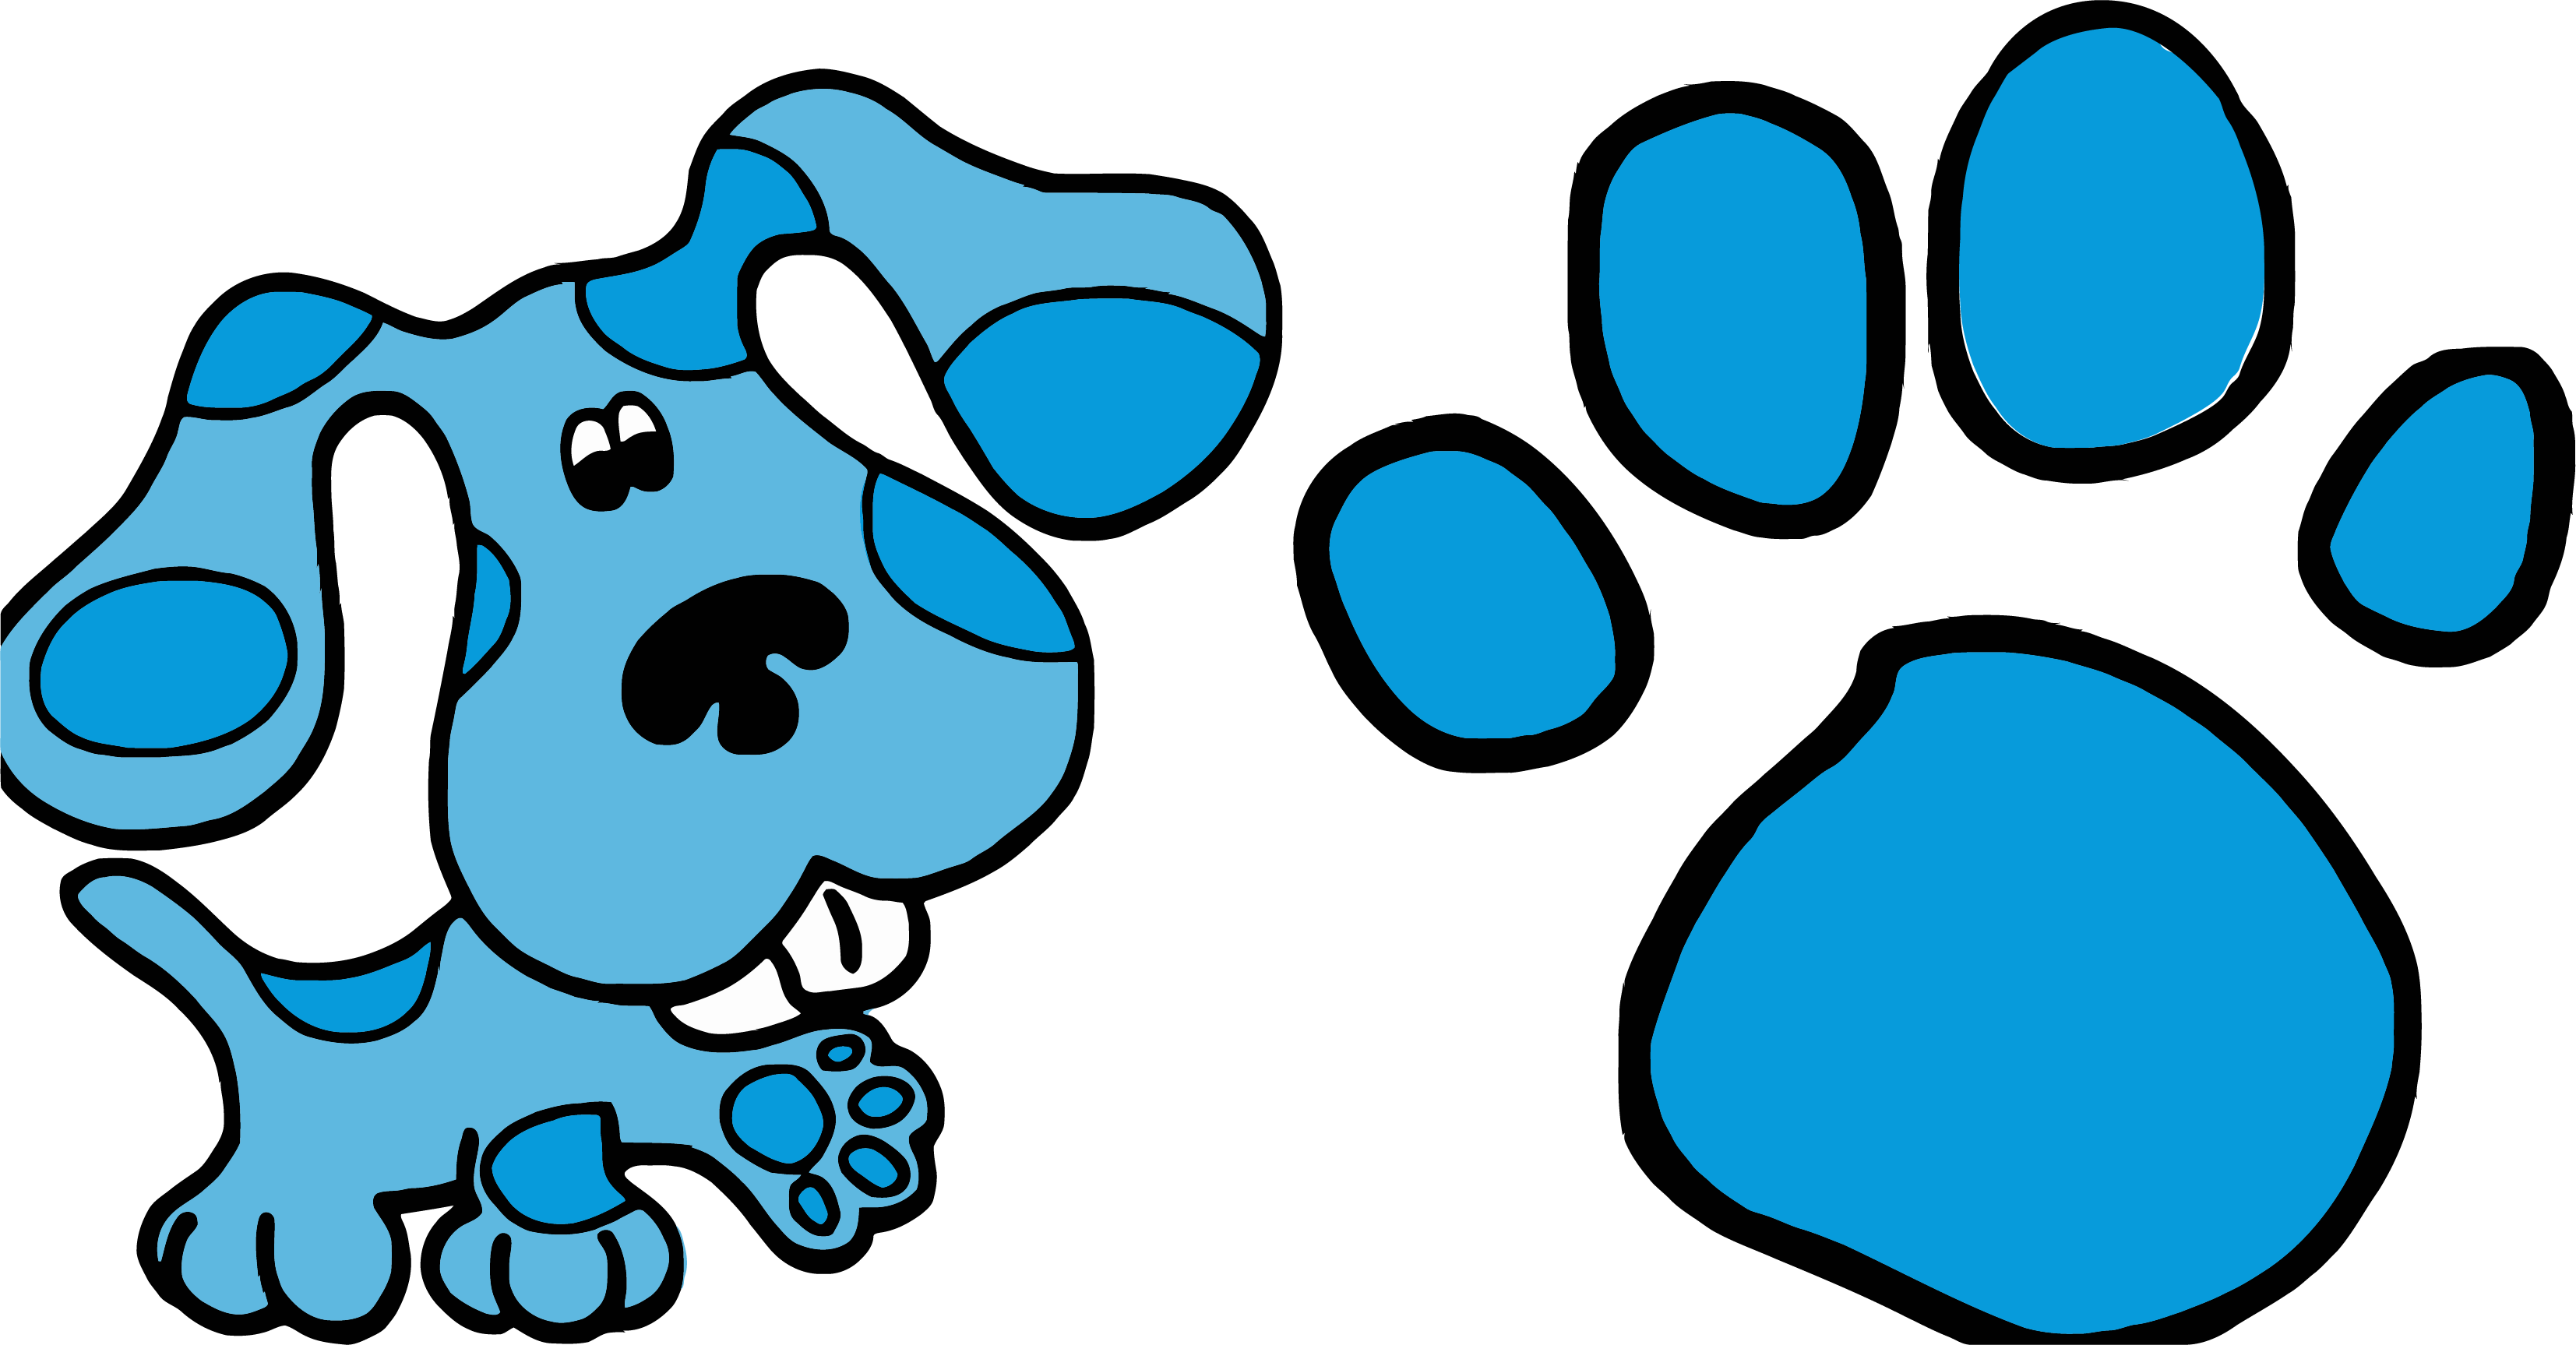 3307x1727 Blue's Clues Clip Art And Footprint Clipart Png